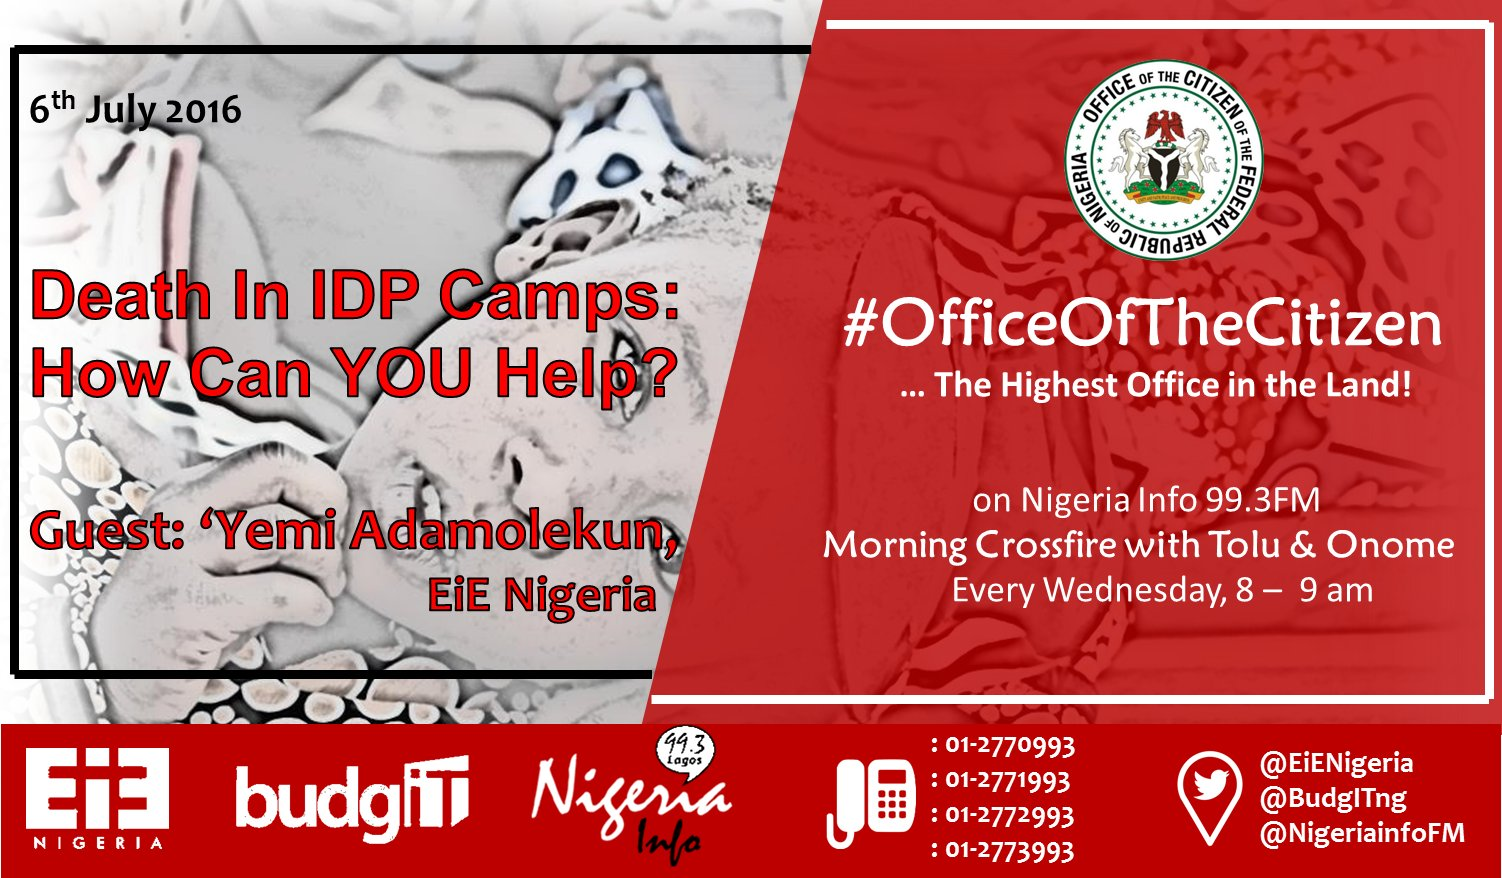 Thumbnail for #OfficeOfTheCitizen: Deaths in IDP Camps: How Can YOU Help?